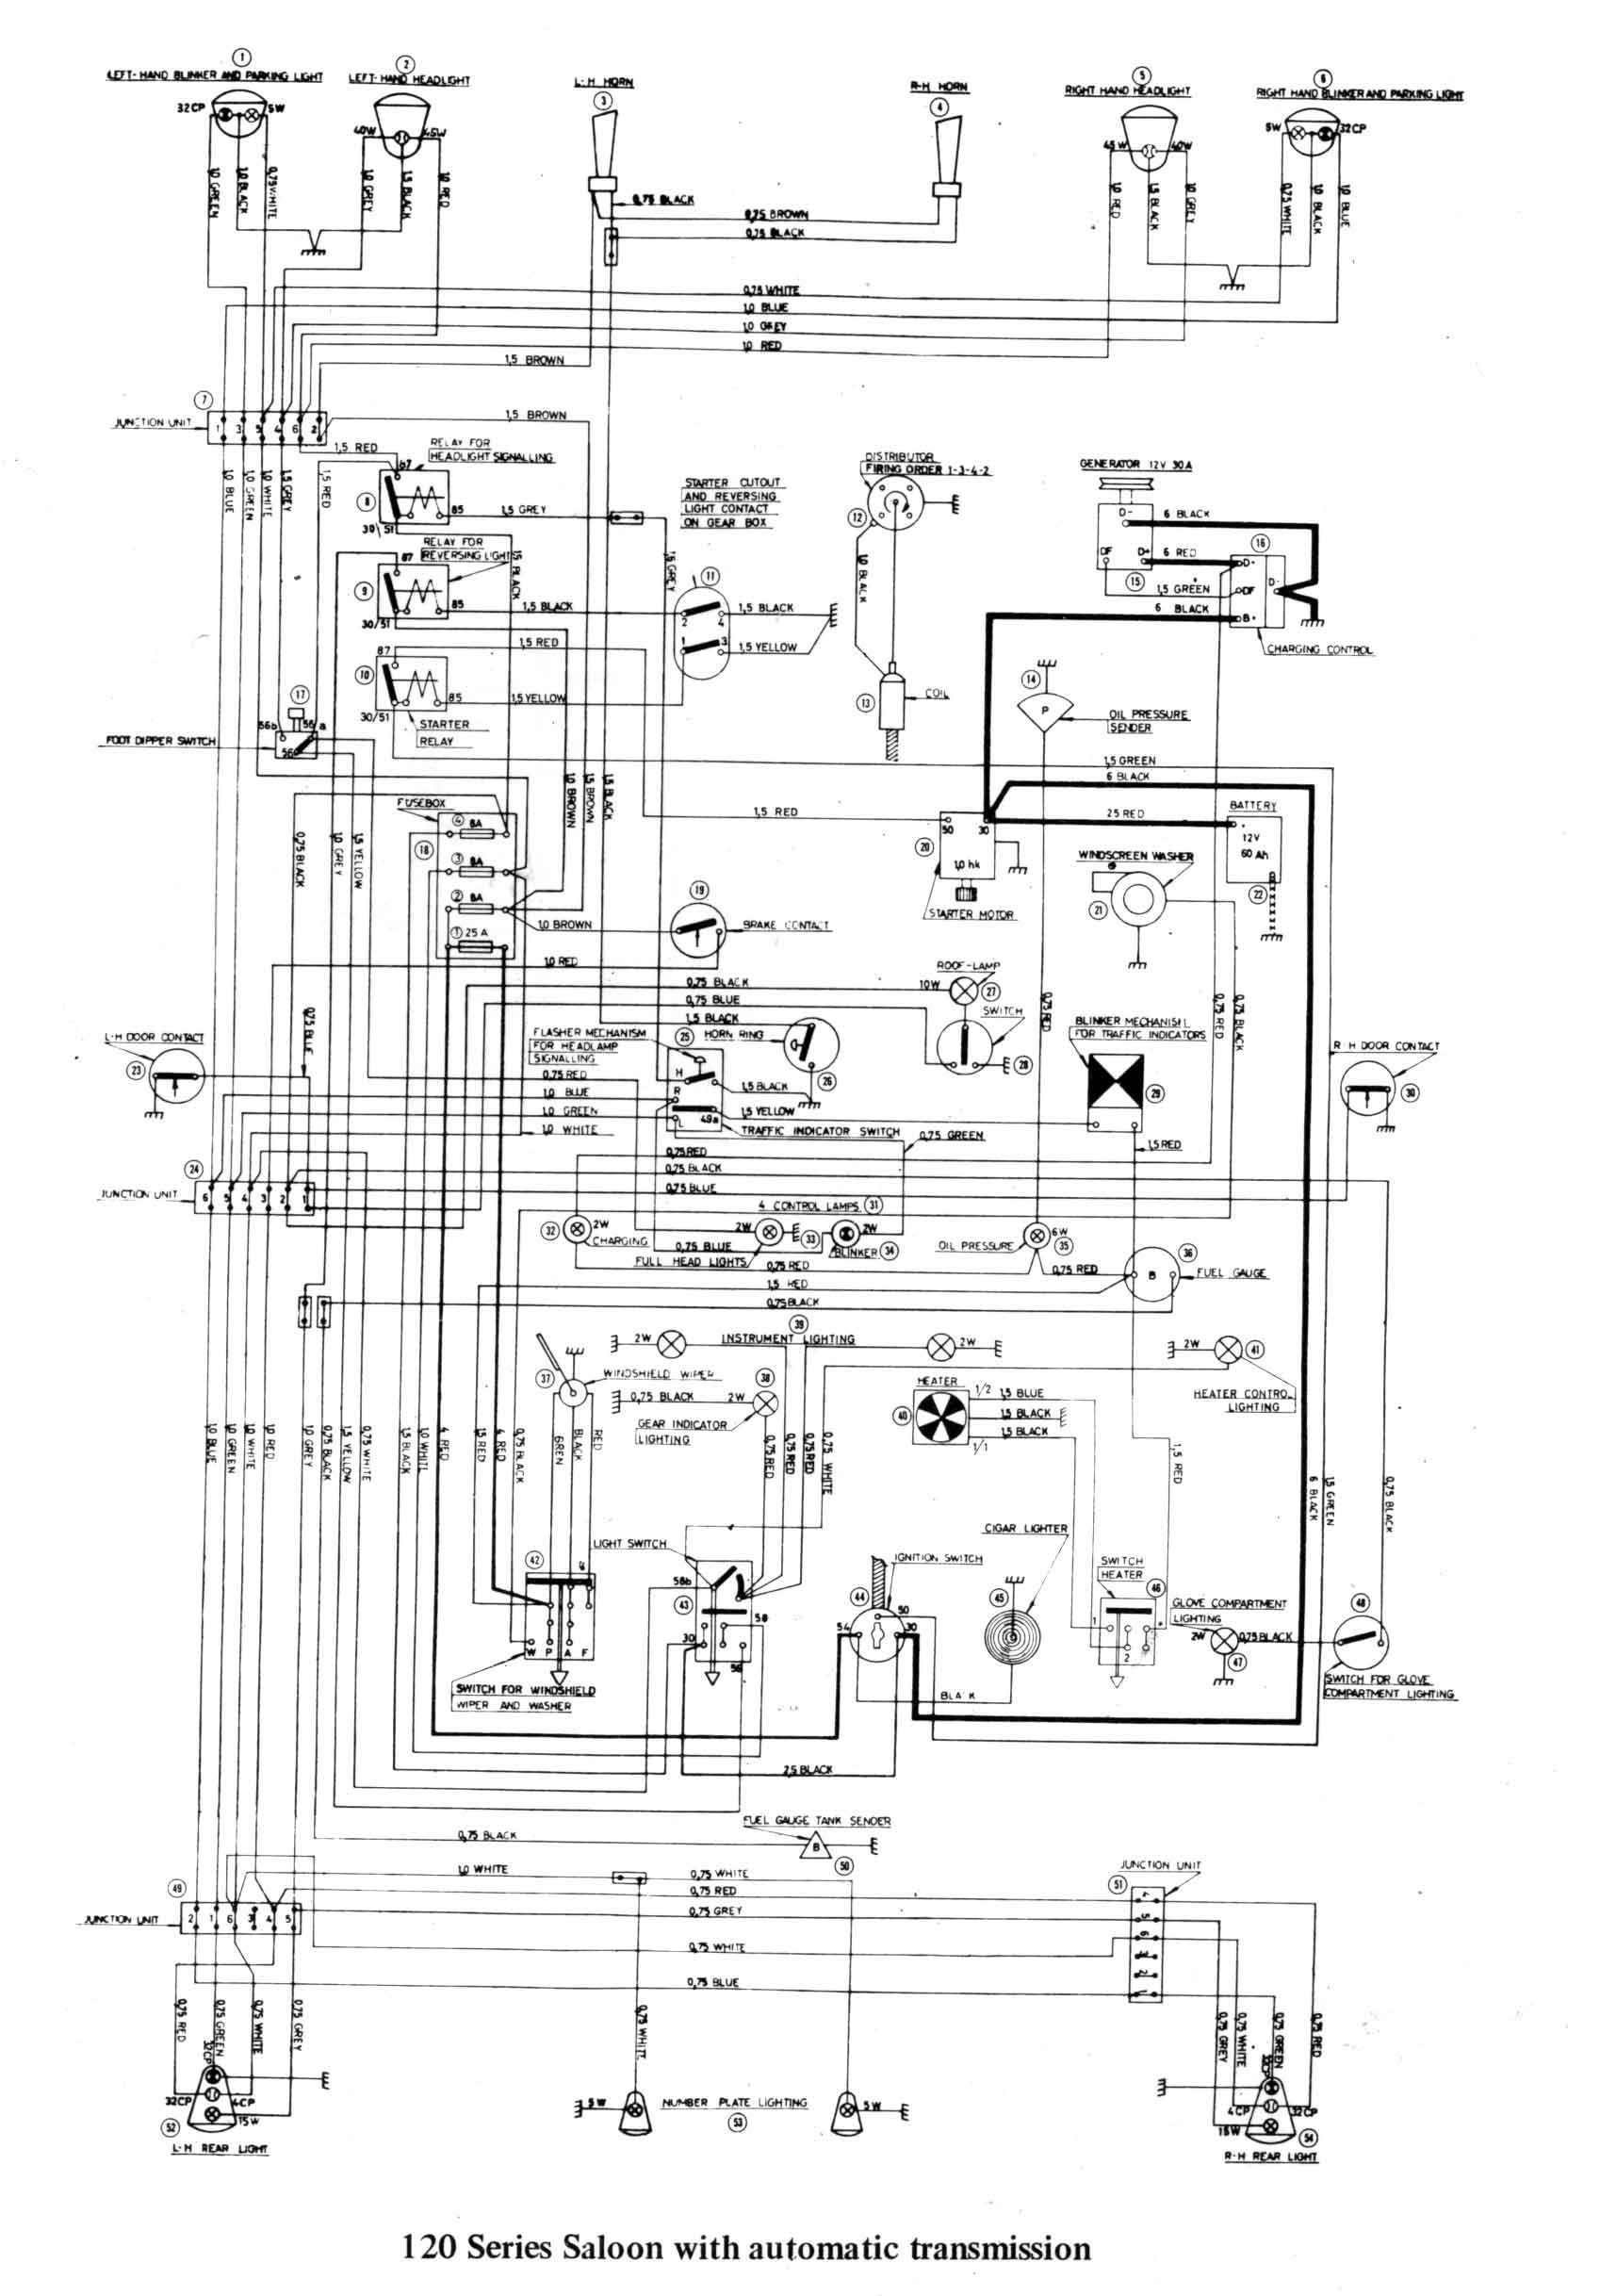 Diagram Of A Manual Transmission Wiring Diagram Manual Simple Turn Lesco Wiring  Diagram Jcb Transmission Wiring Diagram